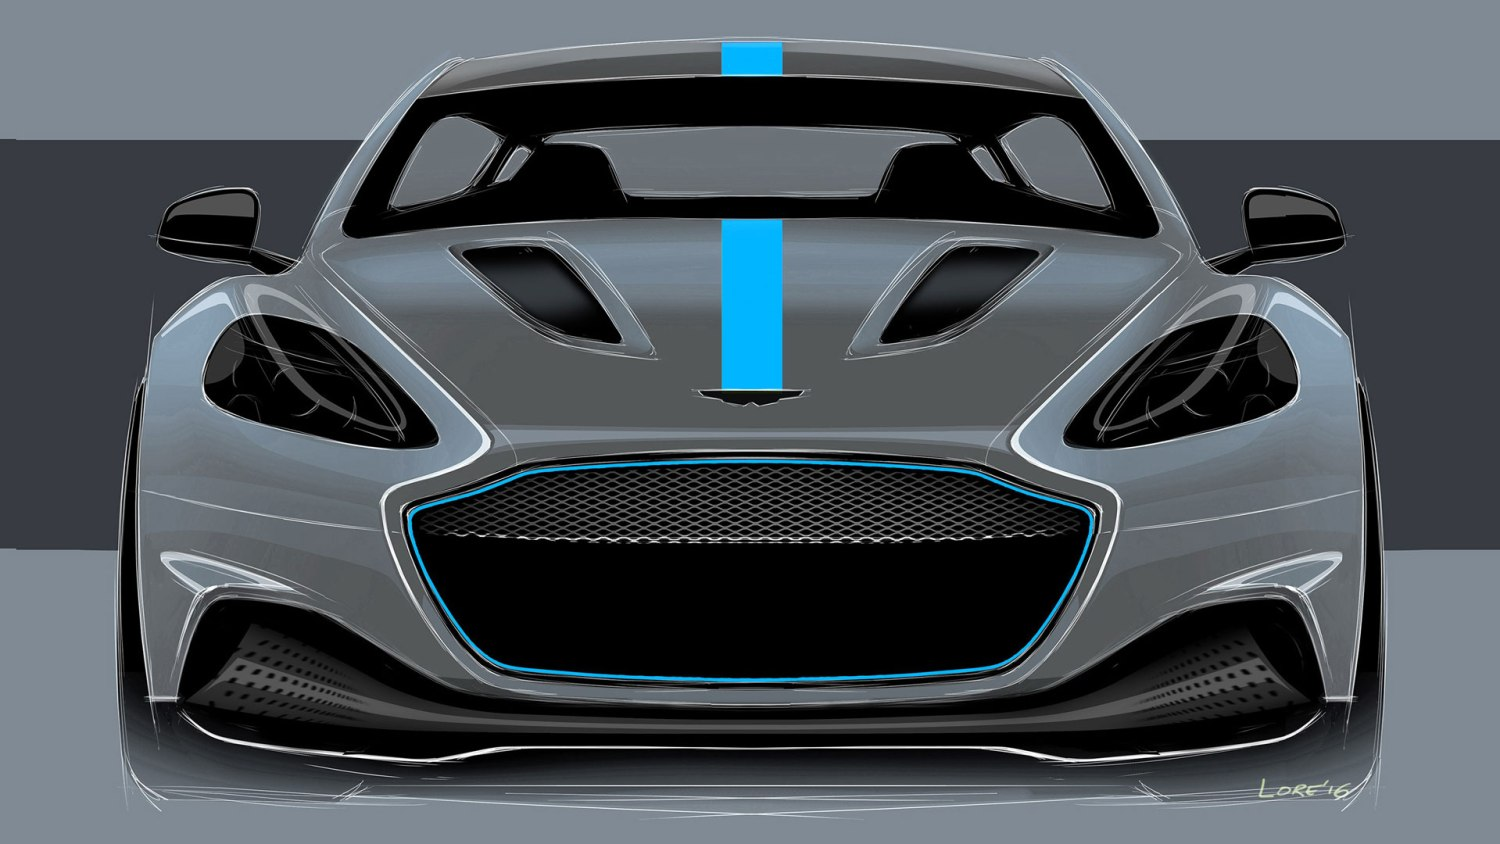 James Bond Aston Martin electric car